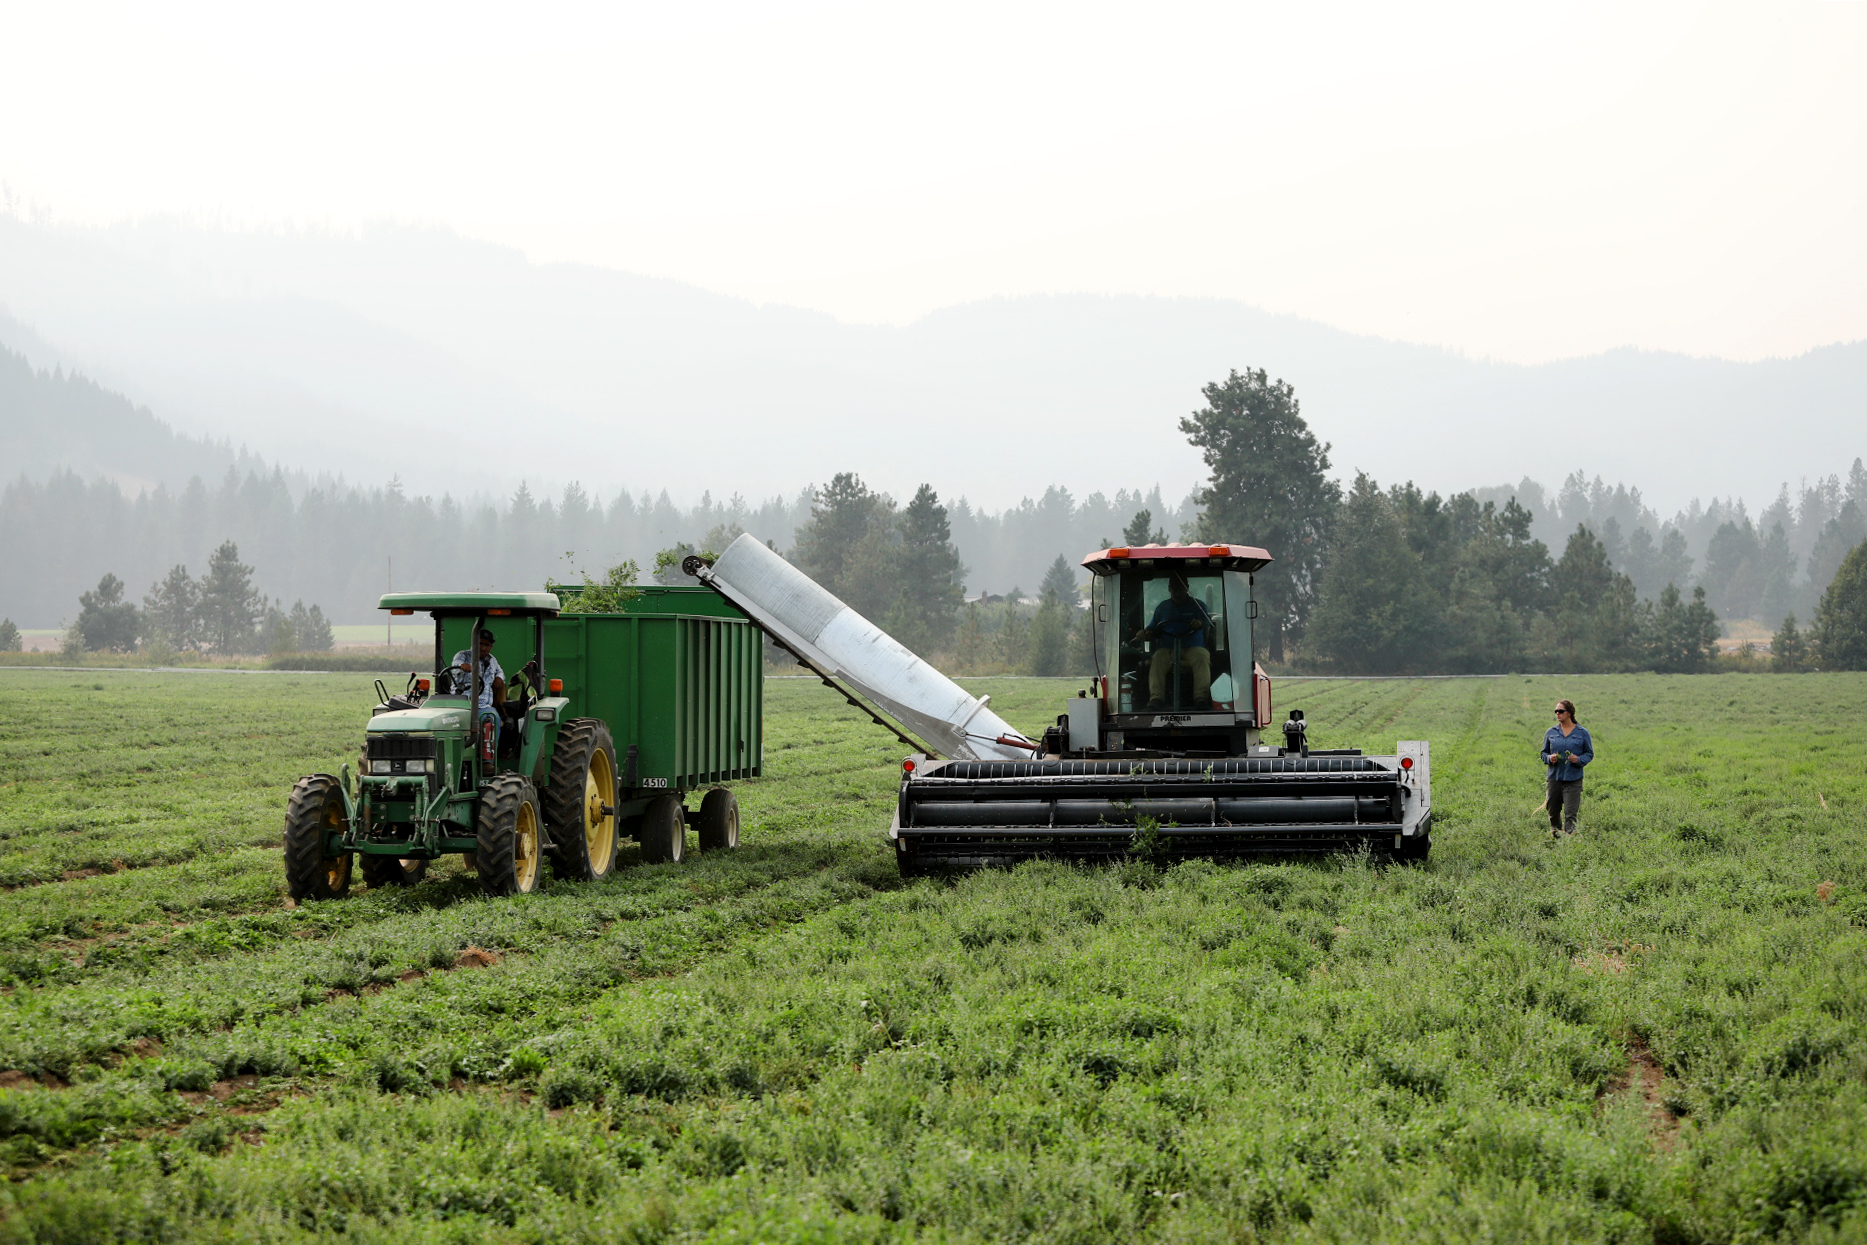 Organic nettles are harvested by combine and collected in tractor-pulled trailer while farmer looks on.